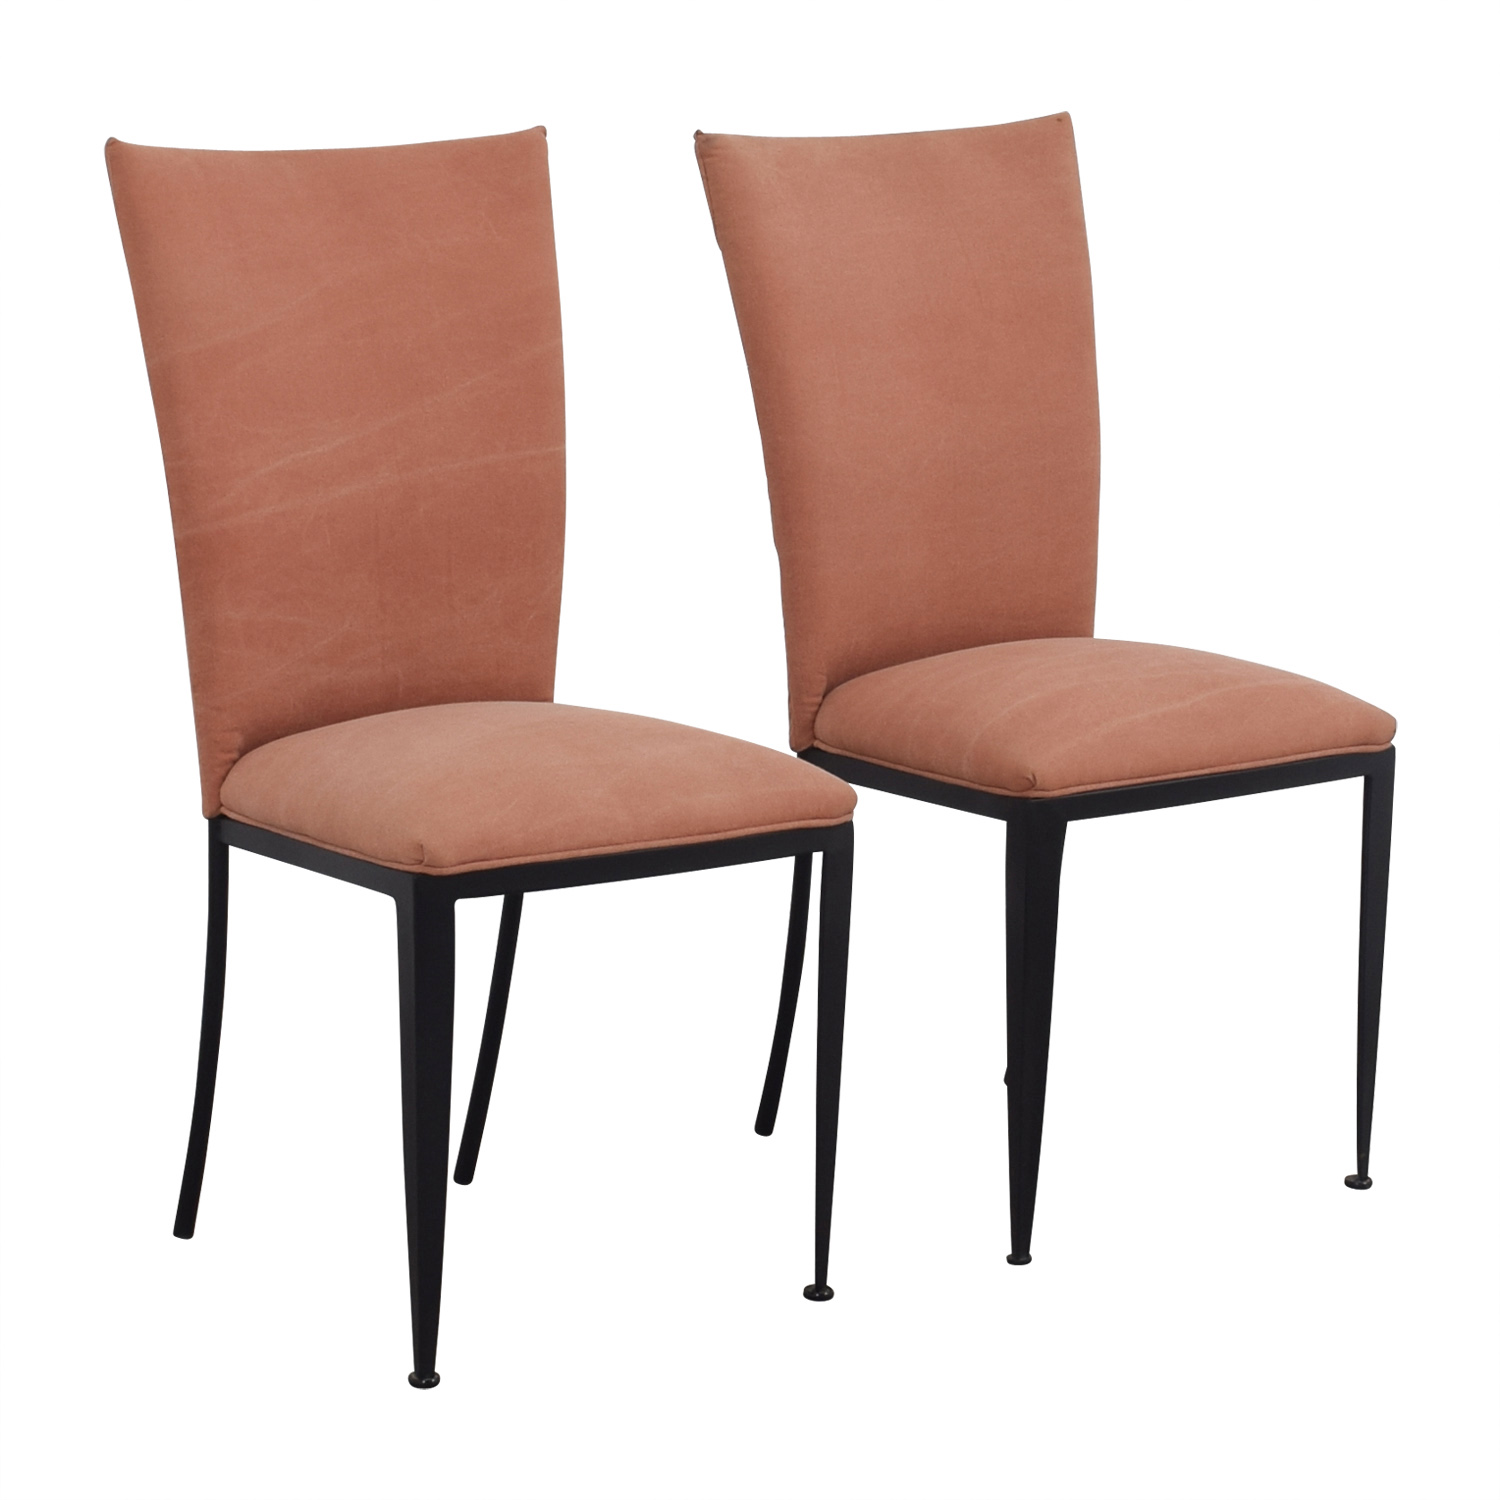 dining chairs at marshalls chair cover hire north east england 77 off marshall fields pink upholstered